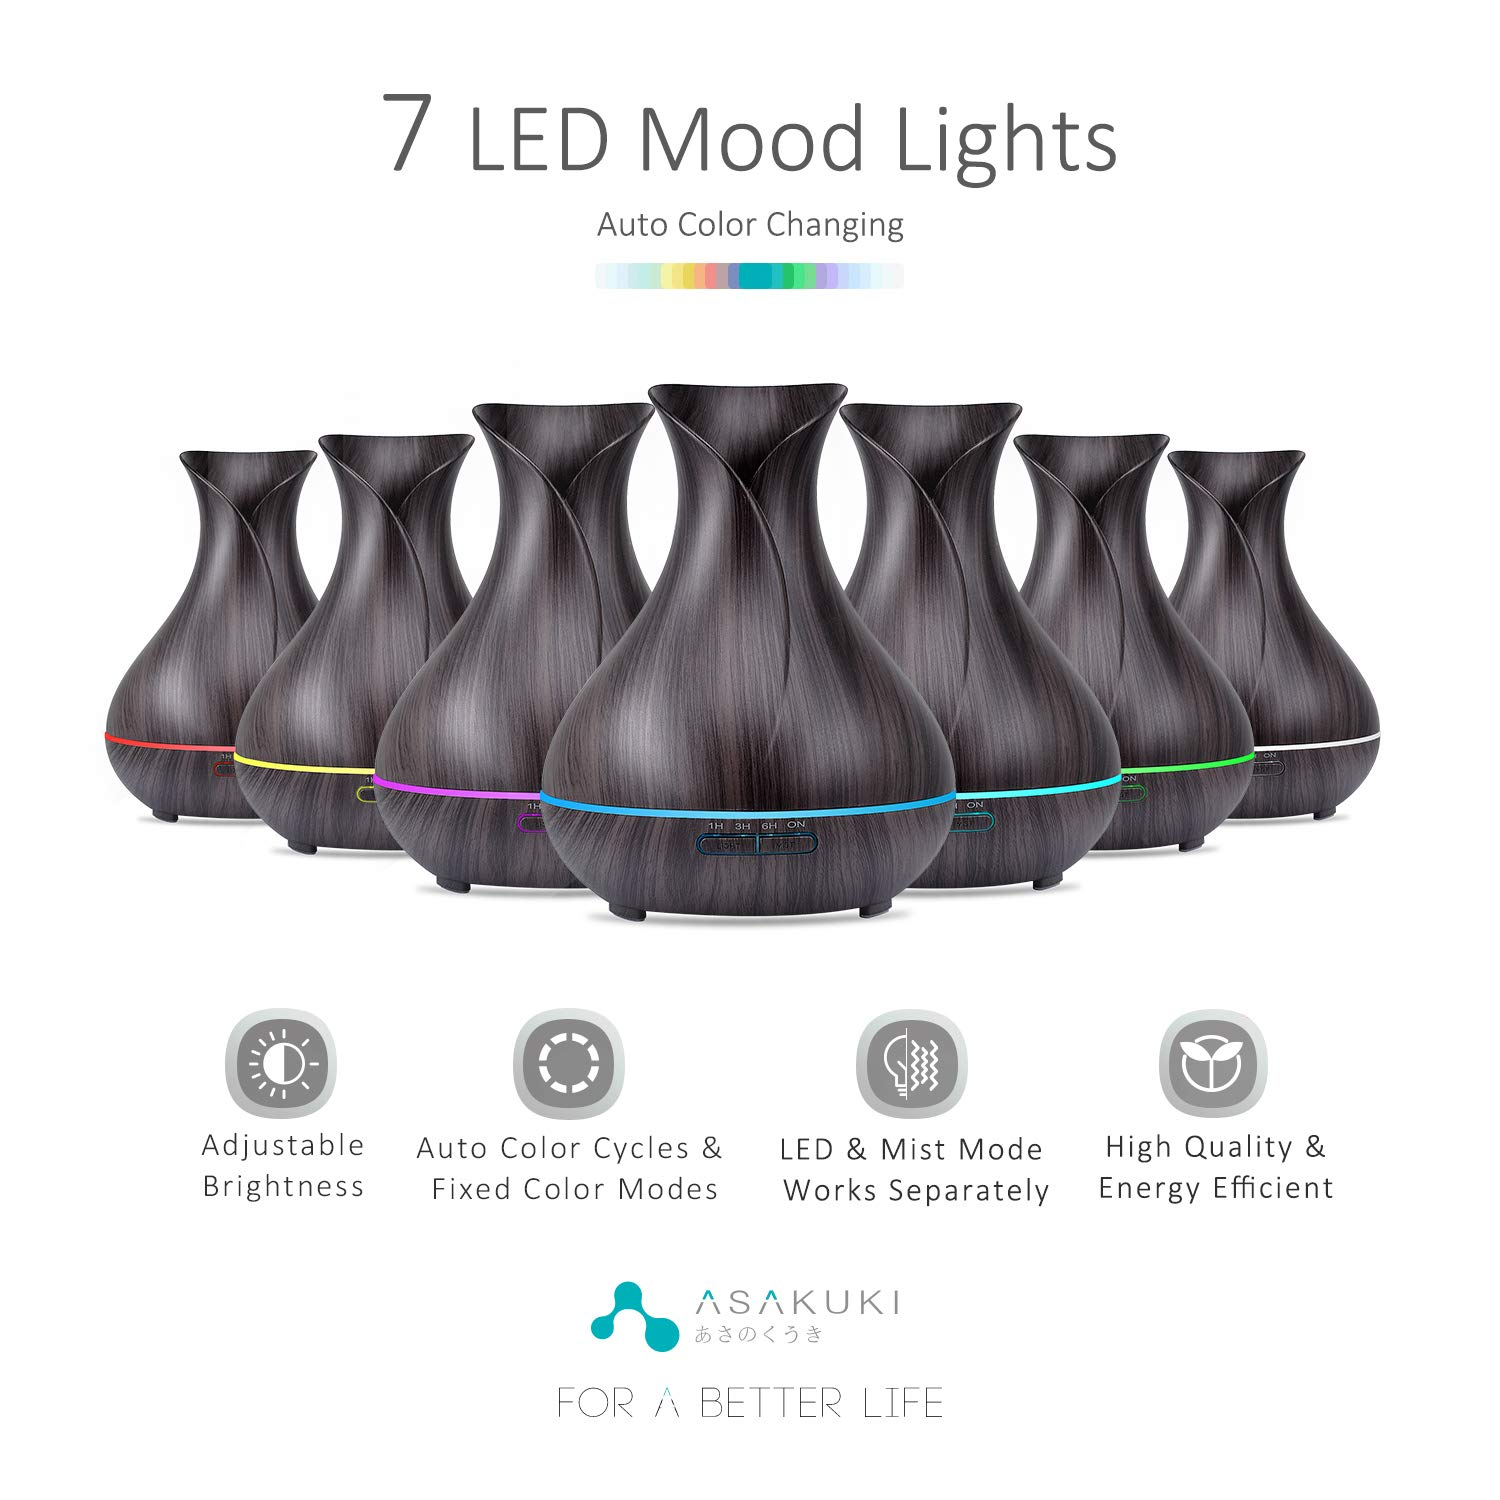 Office Spa Adjustable Mist Modes Natural Home Fragrance Diffuser with 7 LED Color Changing Light Study Gym Waterless Auto Shut-Off Functions-for Home ASAKUKI Essential Oil Diffuser 400ML Premium Quiet 5-In-1 Ultrasonic Aroma Diffuser